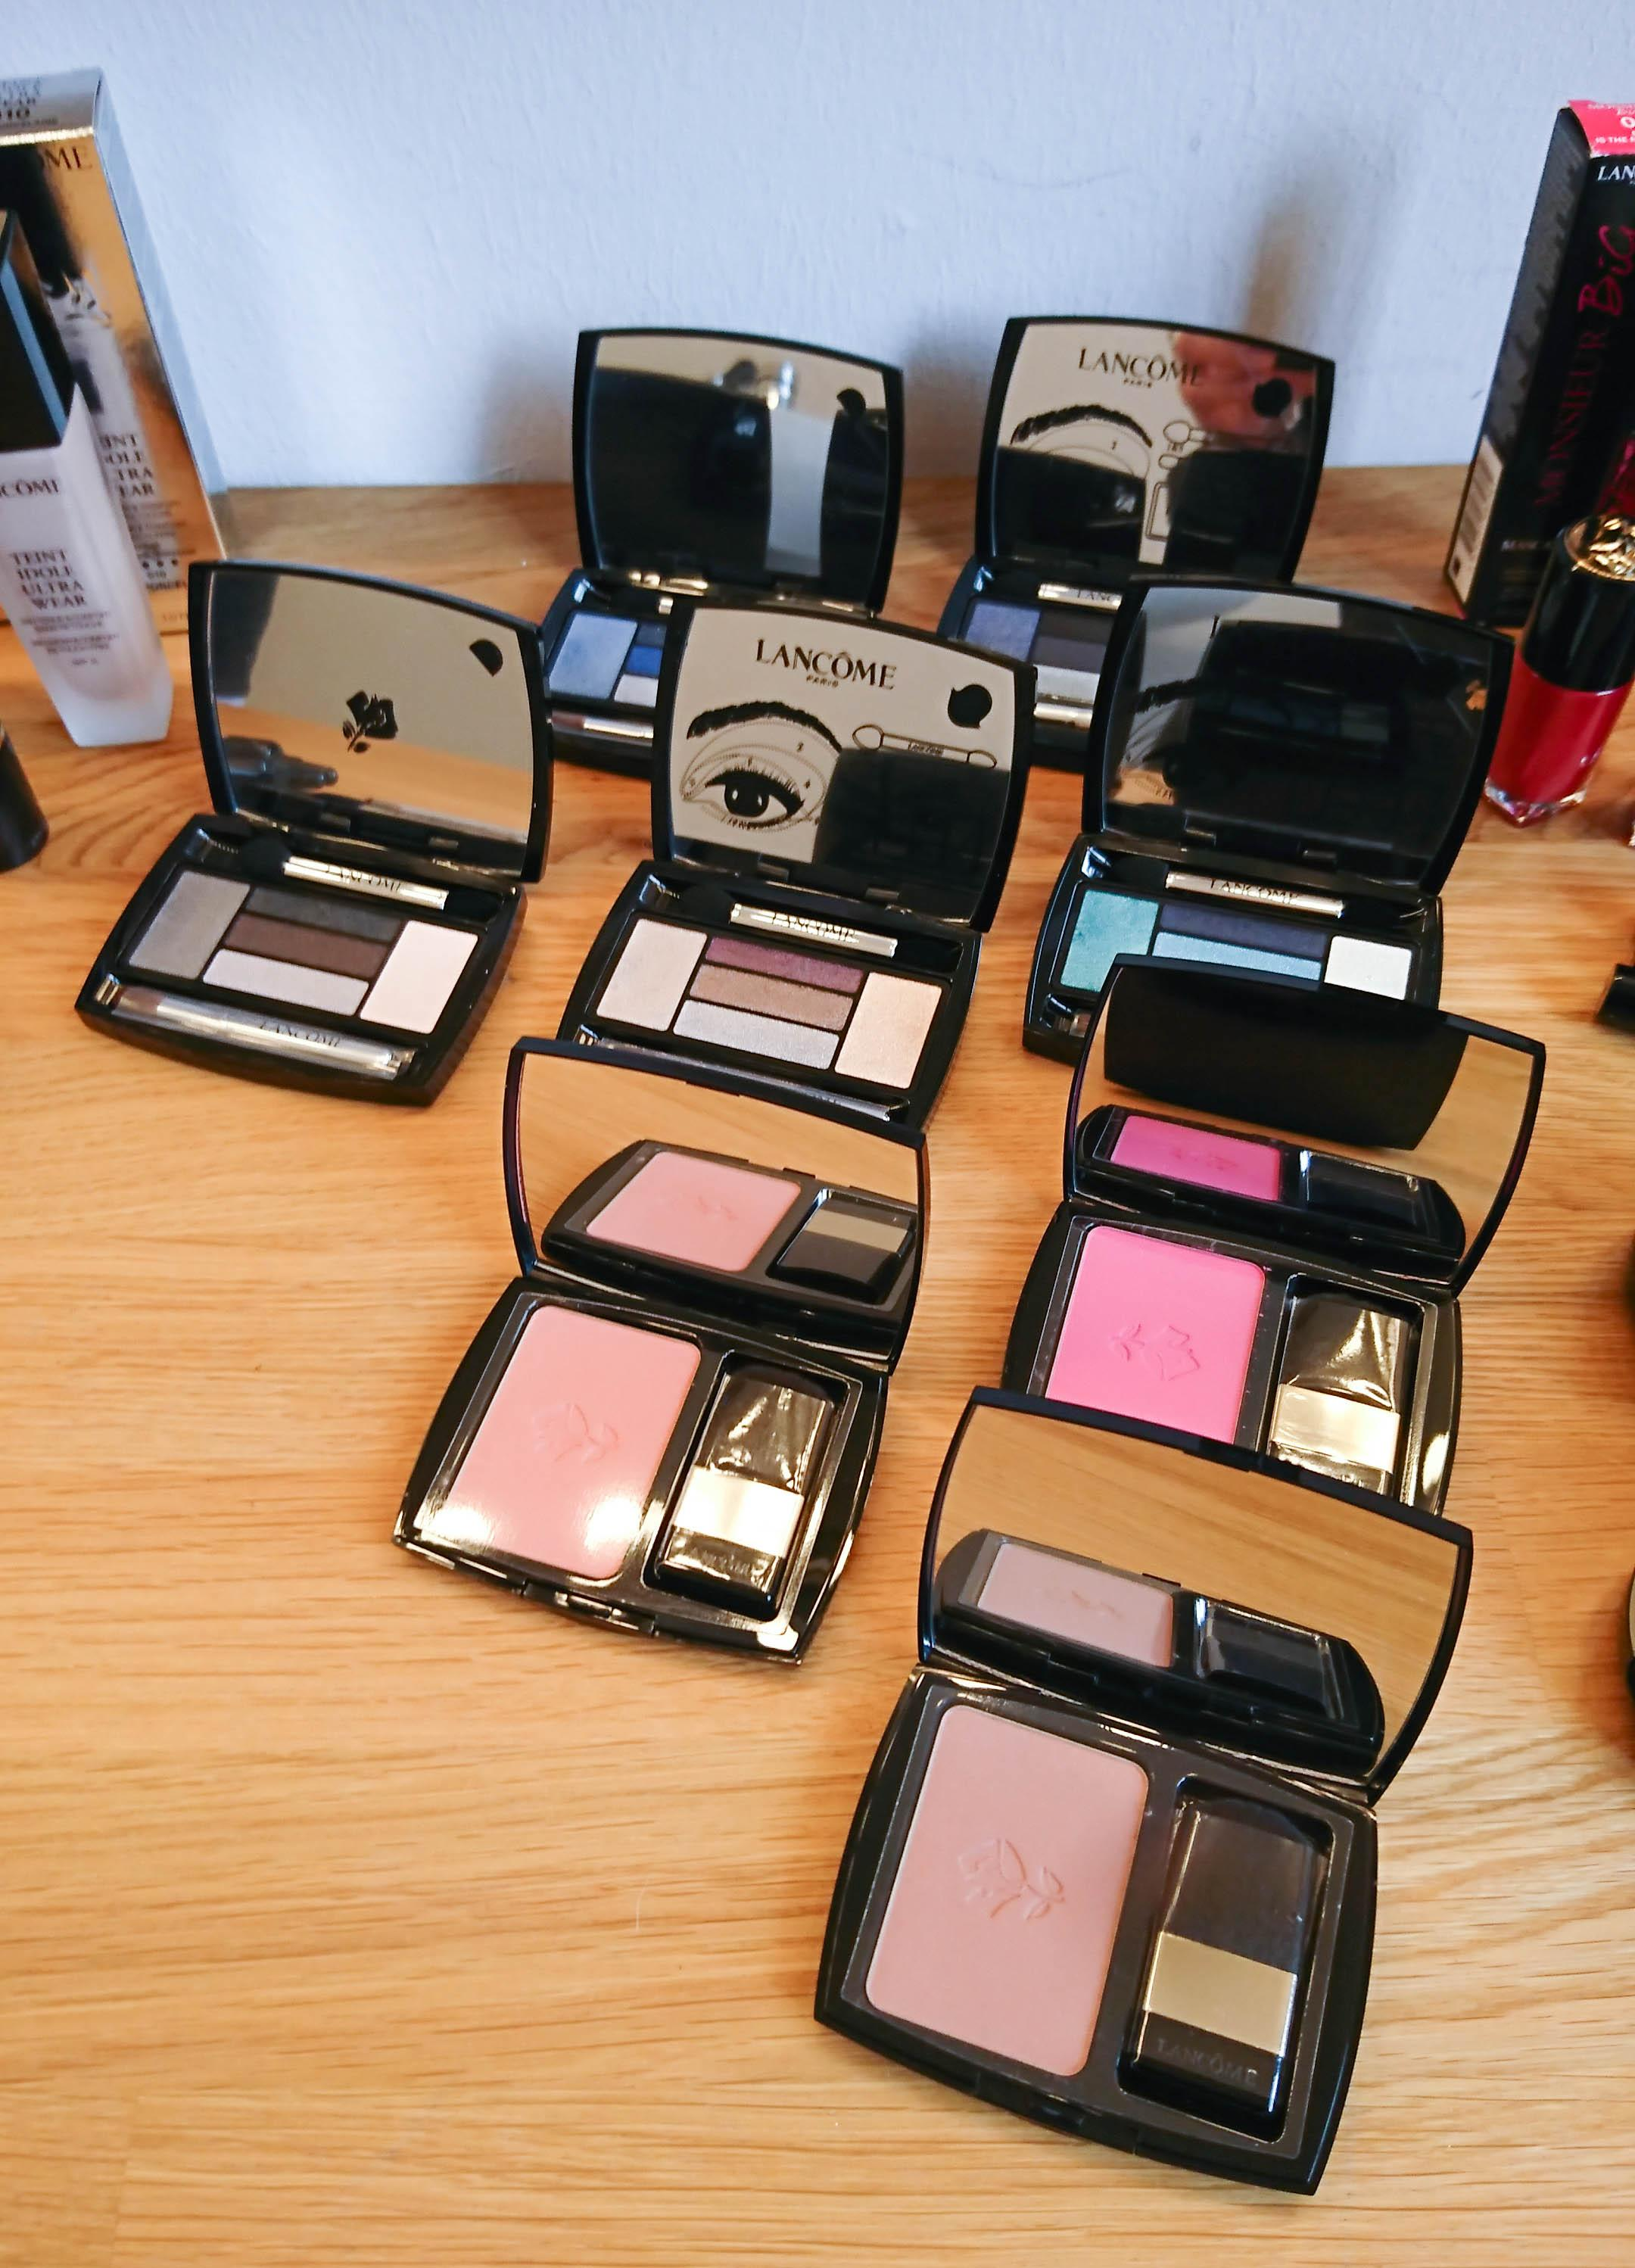 Color Play beim Shooting! #lancome #lisabanholzerbeauty #bloggerbazaar #couchliebt #blush #makeupessentials